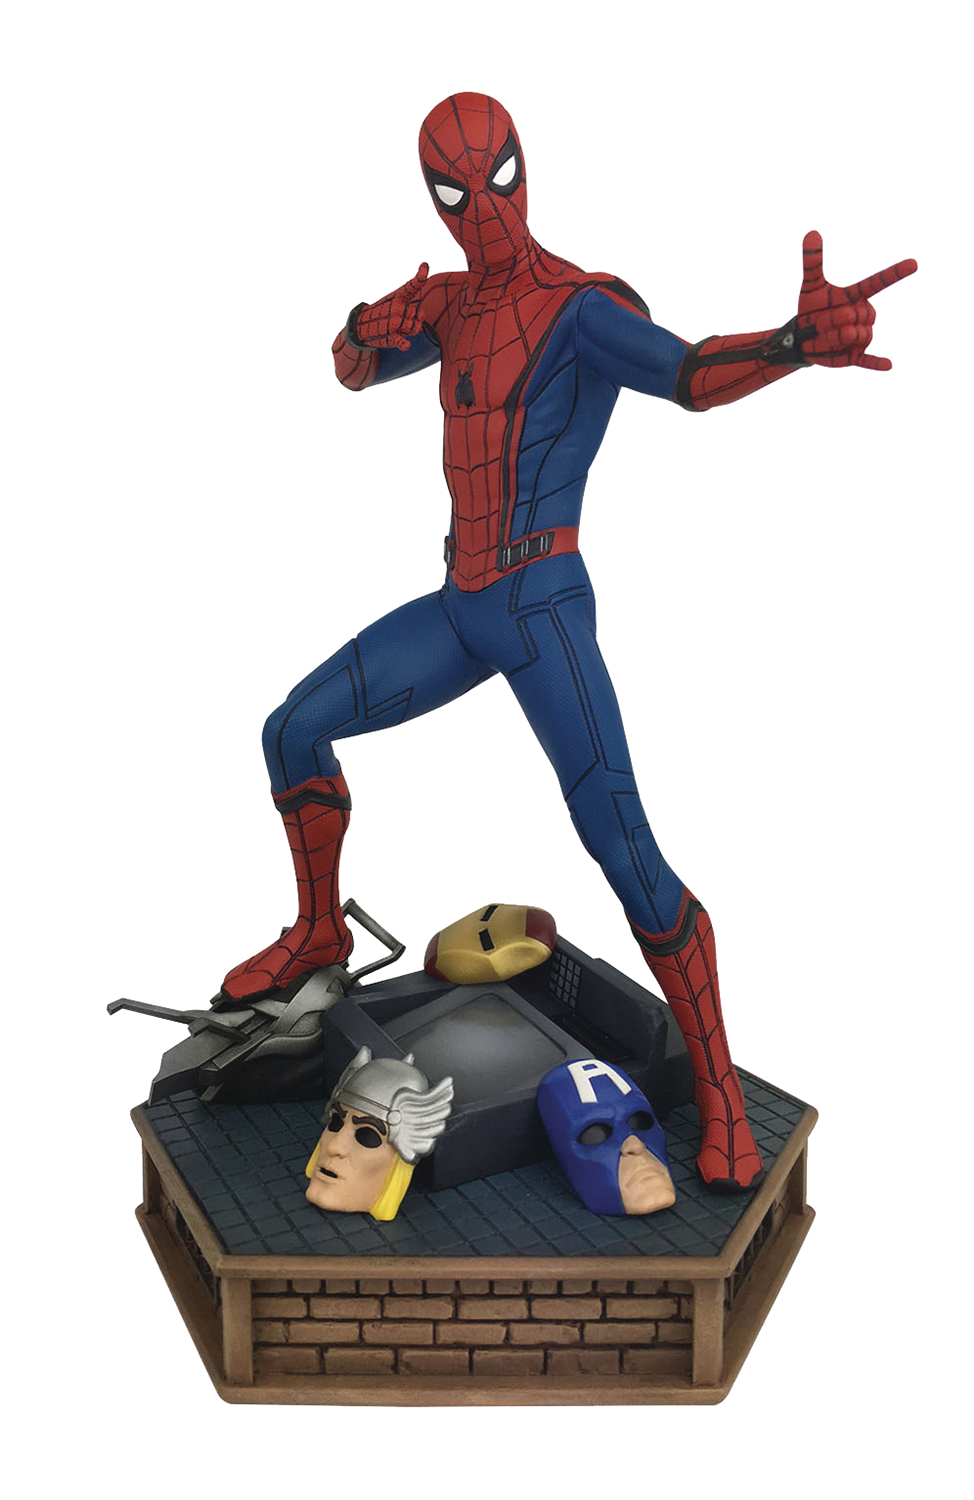 MARVEL PREMIER SPIDER-MAN HOMECOMING STATUE